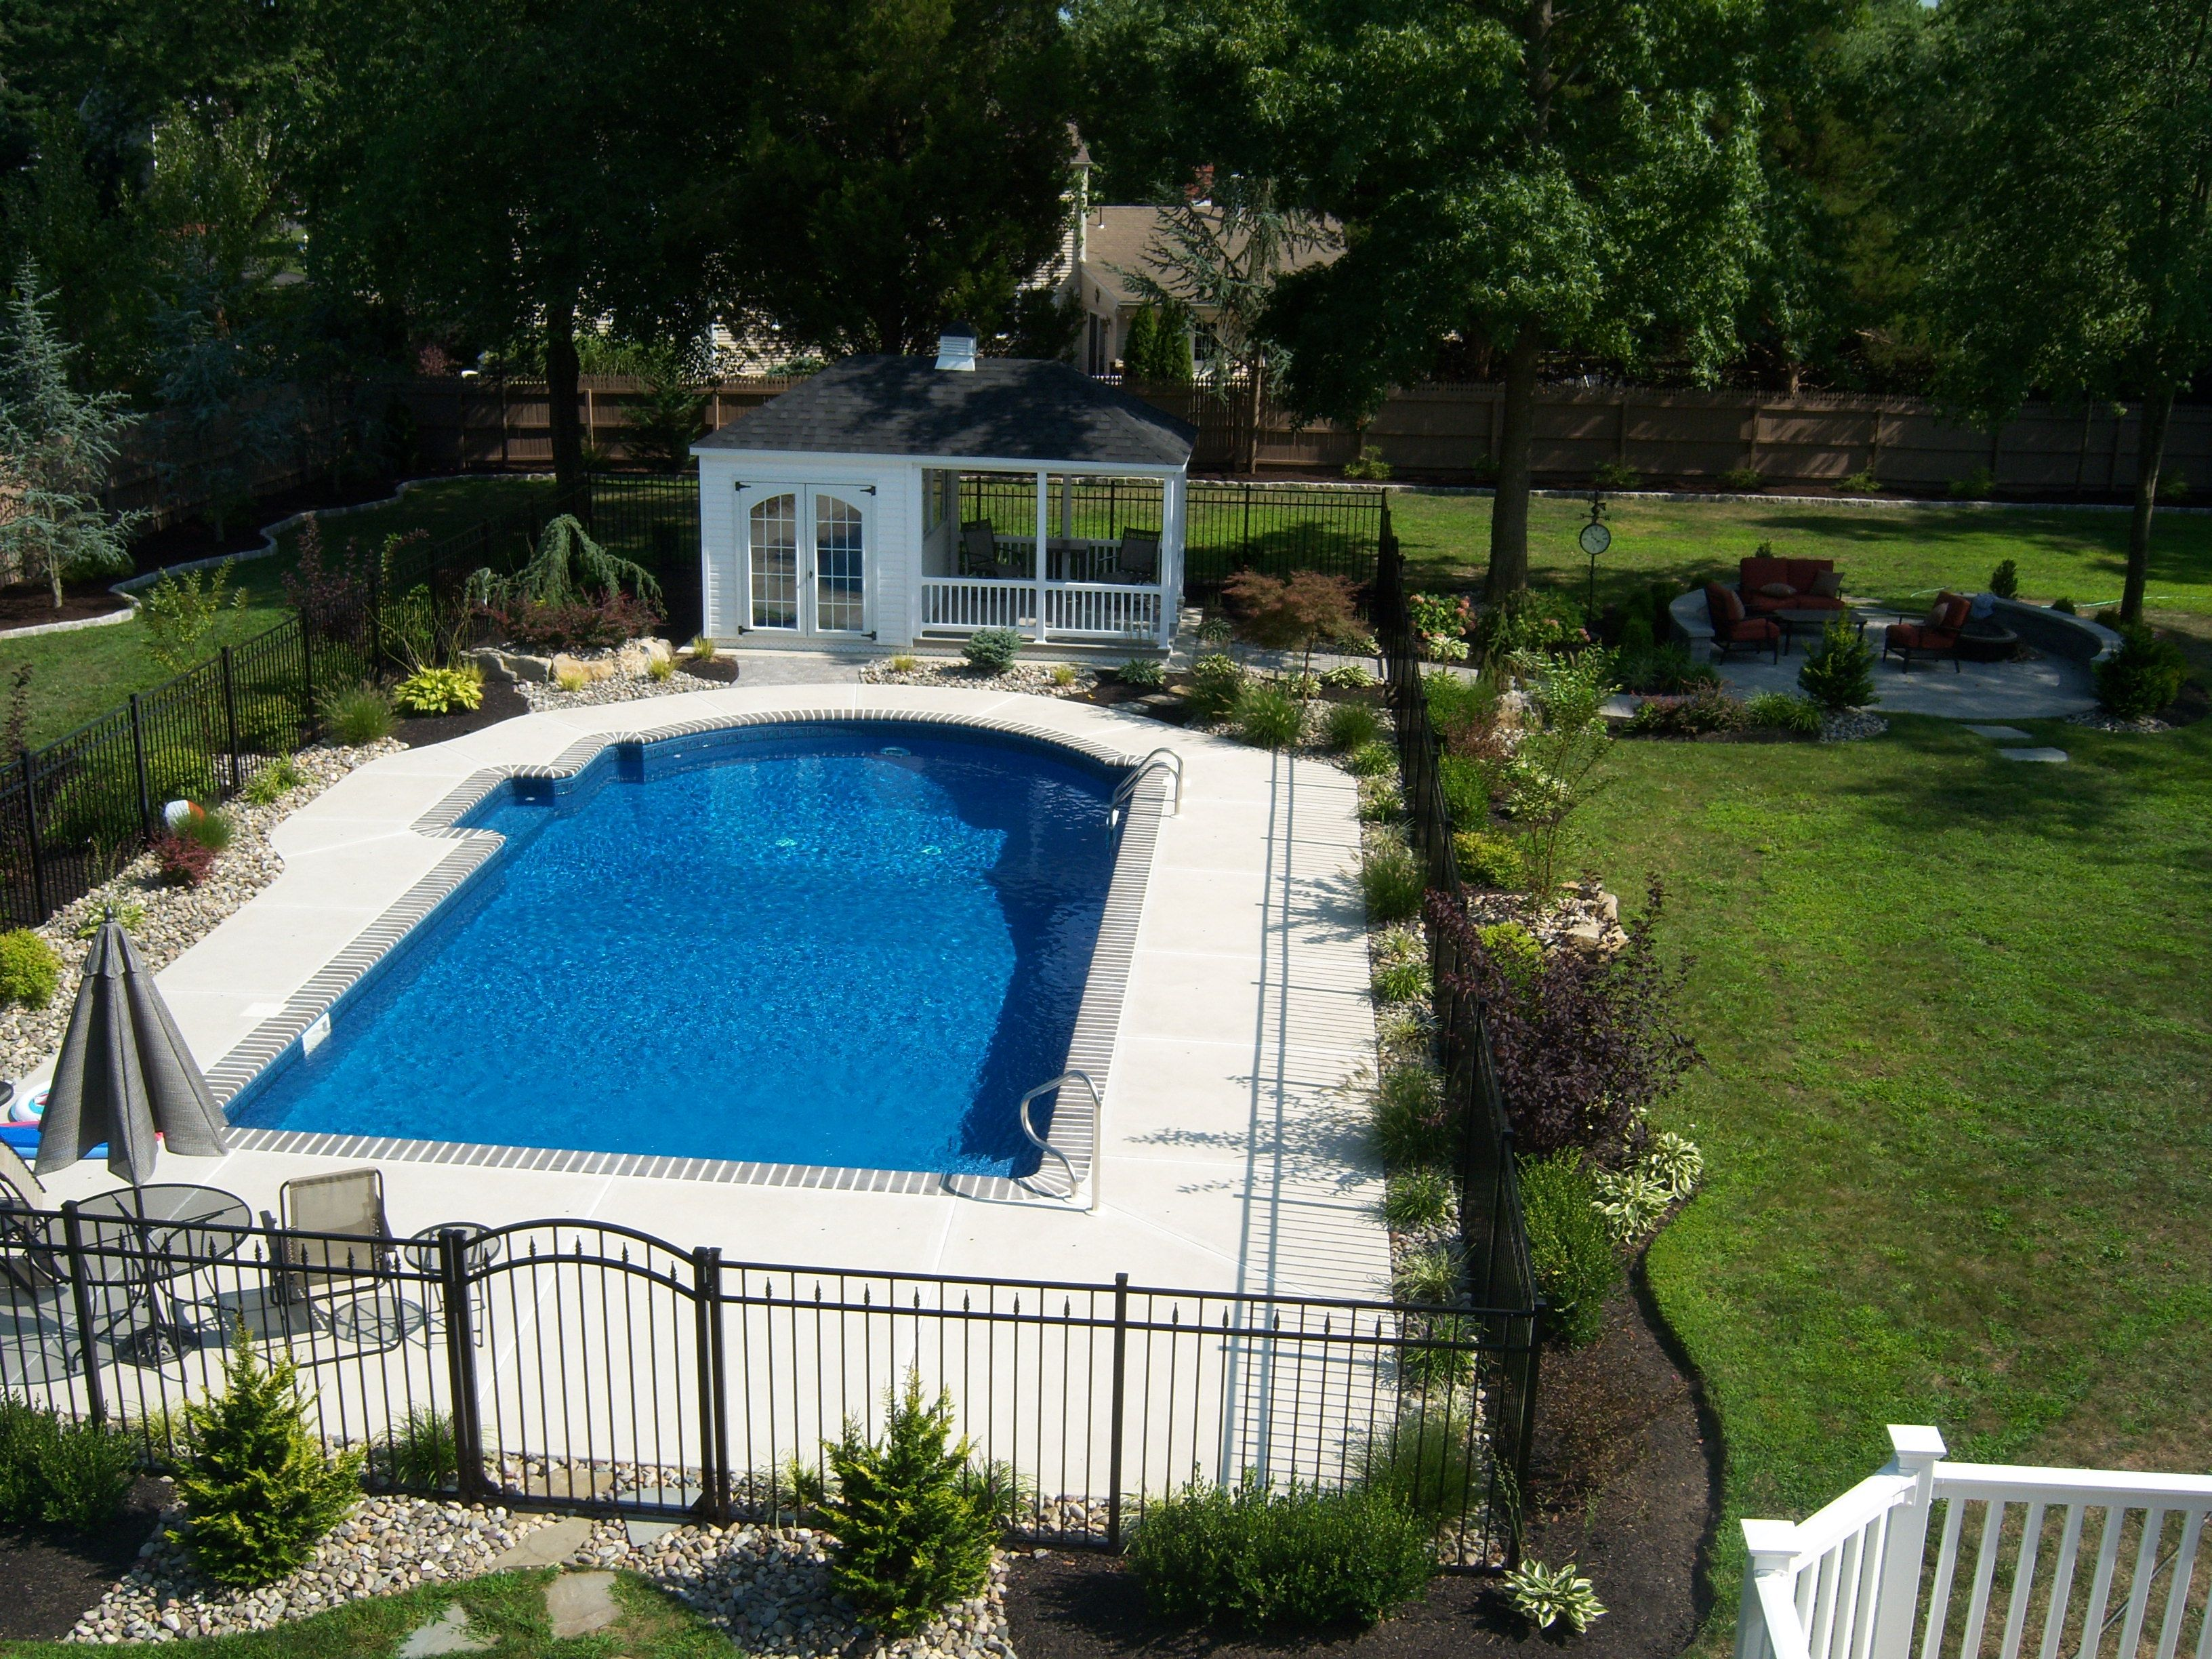 Inground Pool Patio Designs as the premier inground pool builder in western kentucky cavanaugh pool spa patio is a company you can rely on we specialize in vinyl liner and Landscaped Pool Pictures And Now That Were Well Into The Spring And Heading